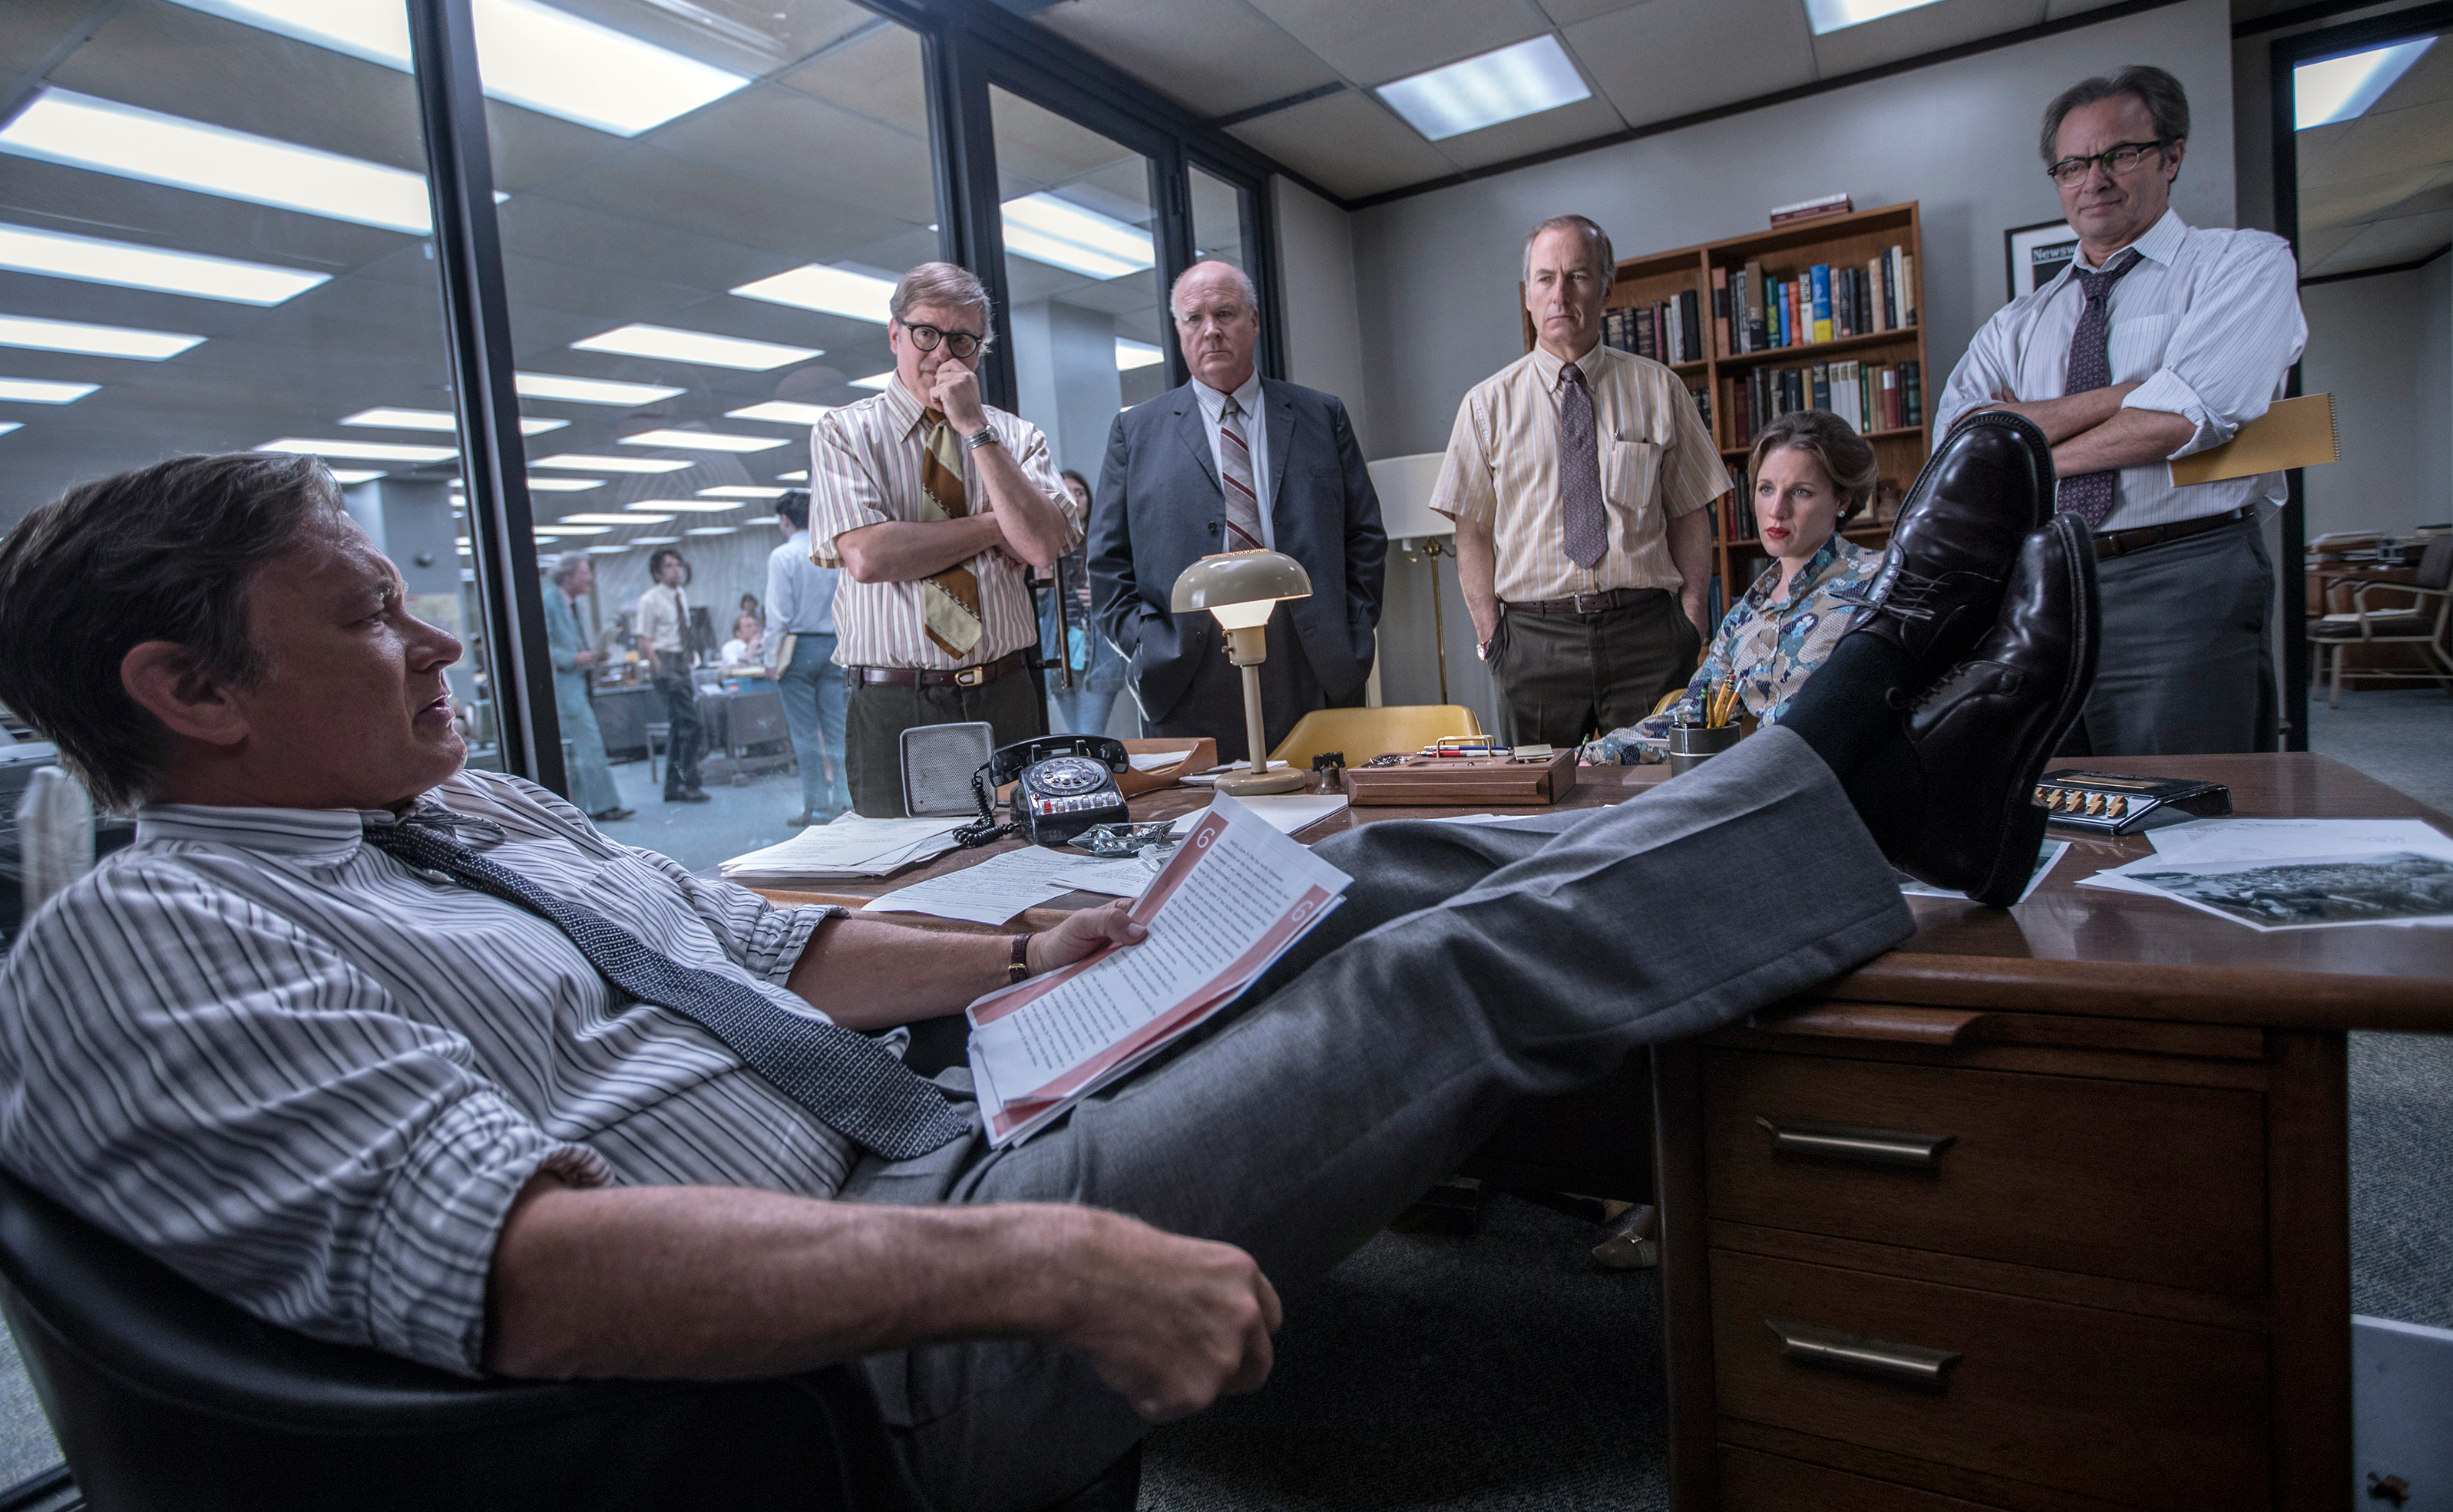 'The Post' Review: Steven Spielberg's Journalistic Thriller Could Not Be  More Timely